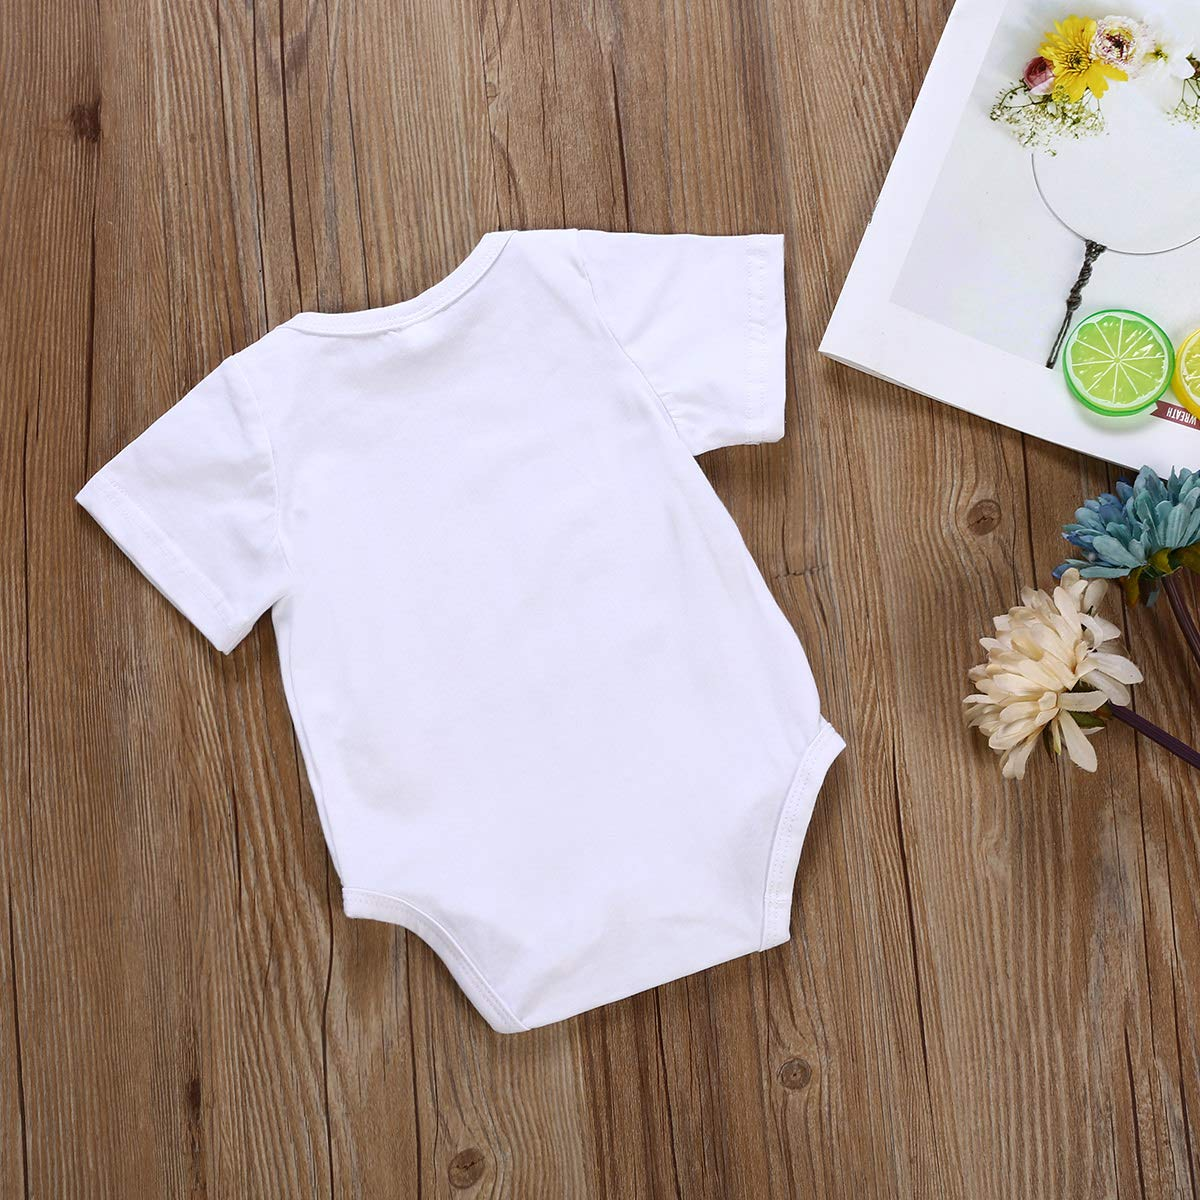 Infant Boys Girls Cotton Romper Toddler Baby My Auntie Loves Me Short Sleeves Onesies Bodysuit Outfits